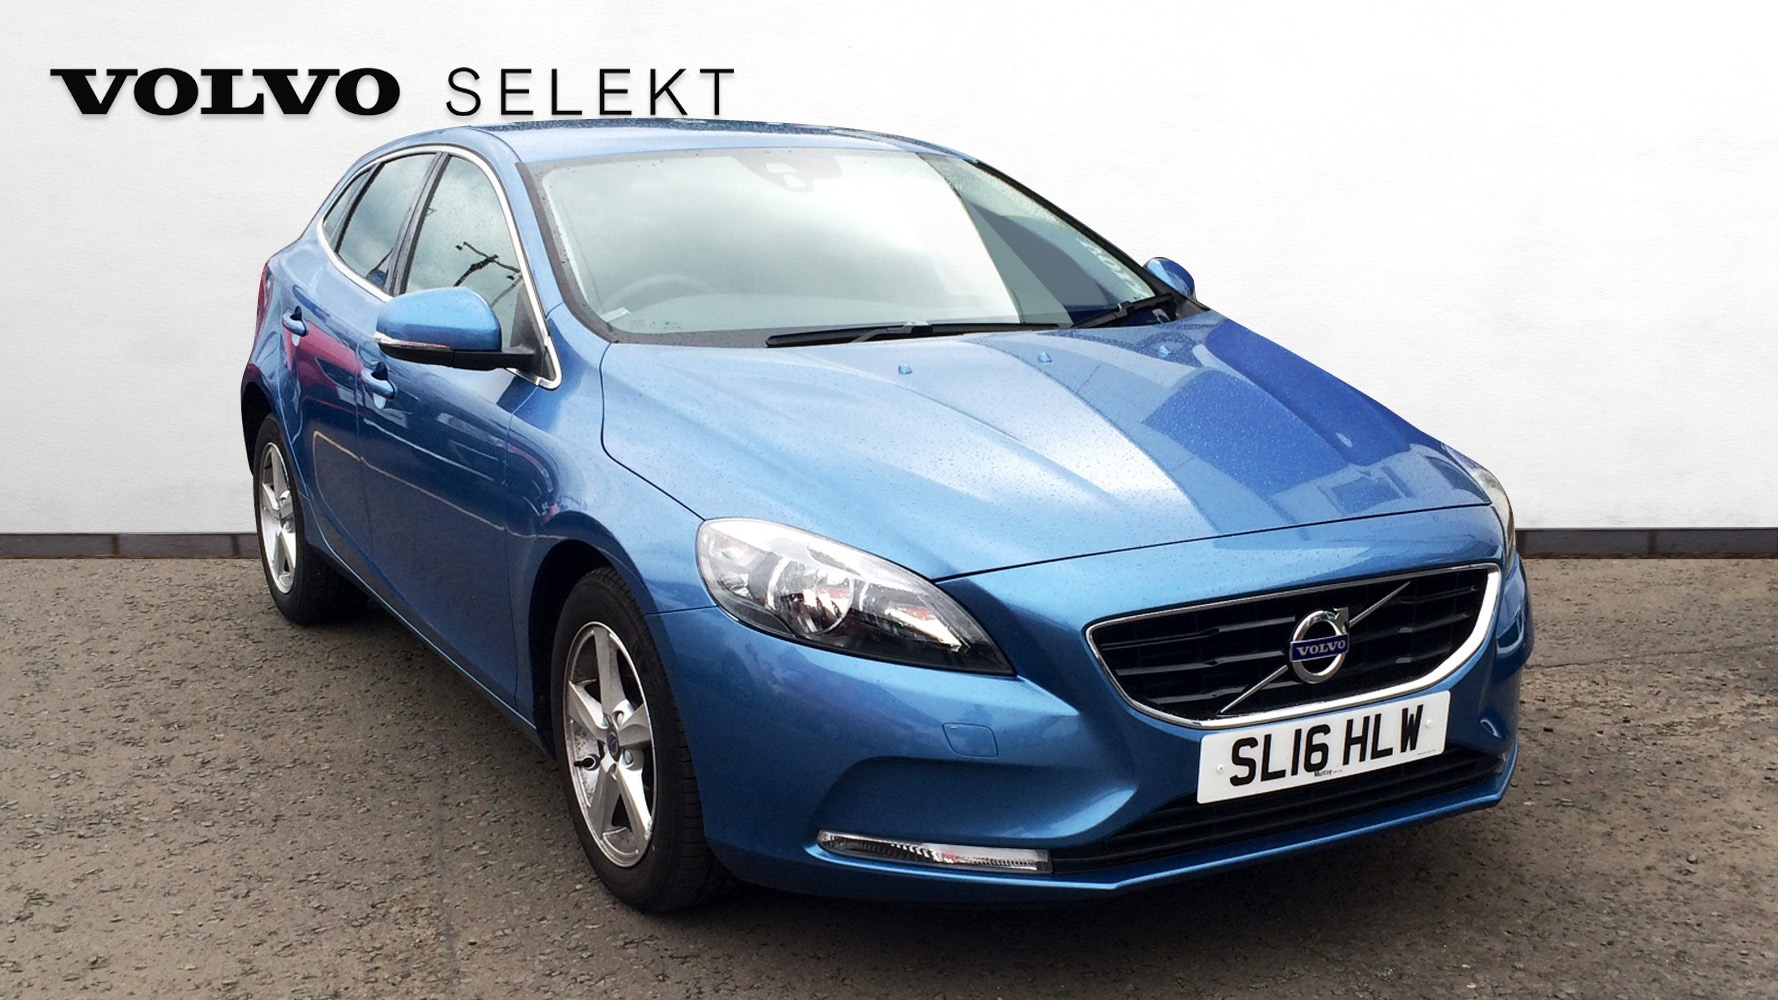 volvo v40 d2 se used vehicle by murray sighthill edinburgh. Black Bedroom Furniture Sets. Home Design Ideas